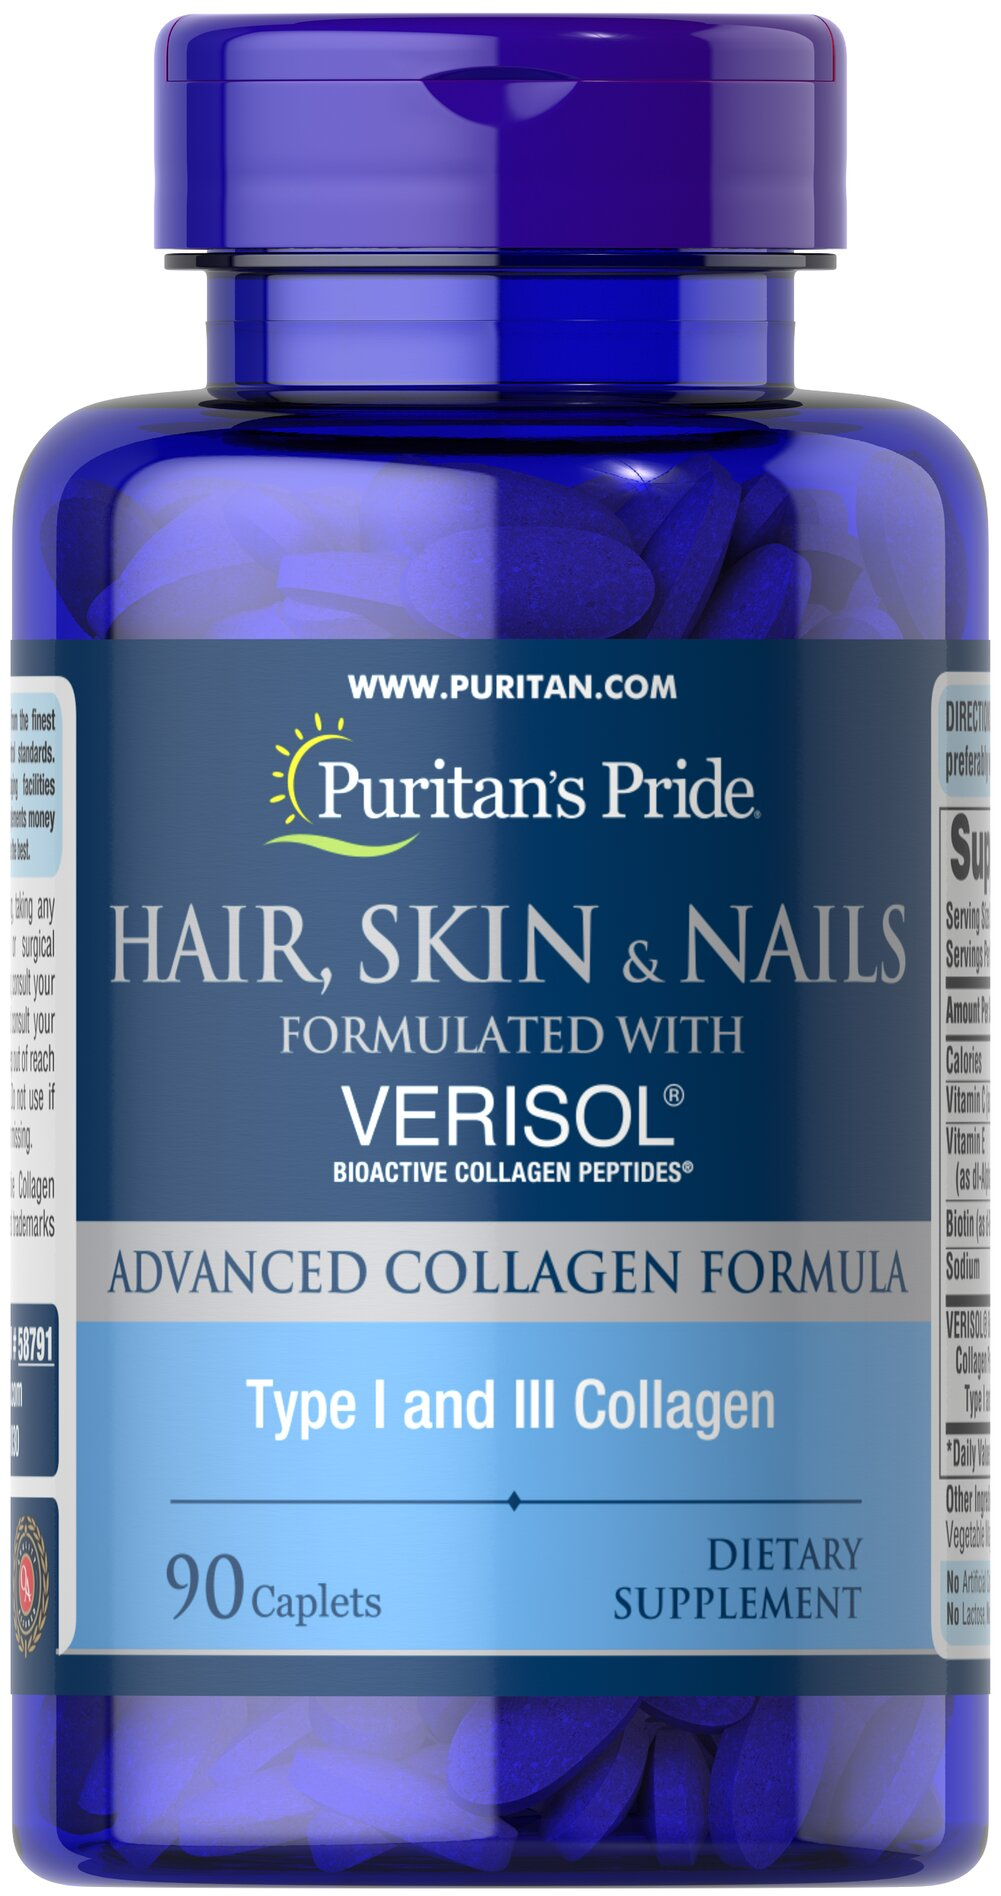 Hair, Skin and Nails formulated with VERISOL® Thumbnail Alternate Bottle View